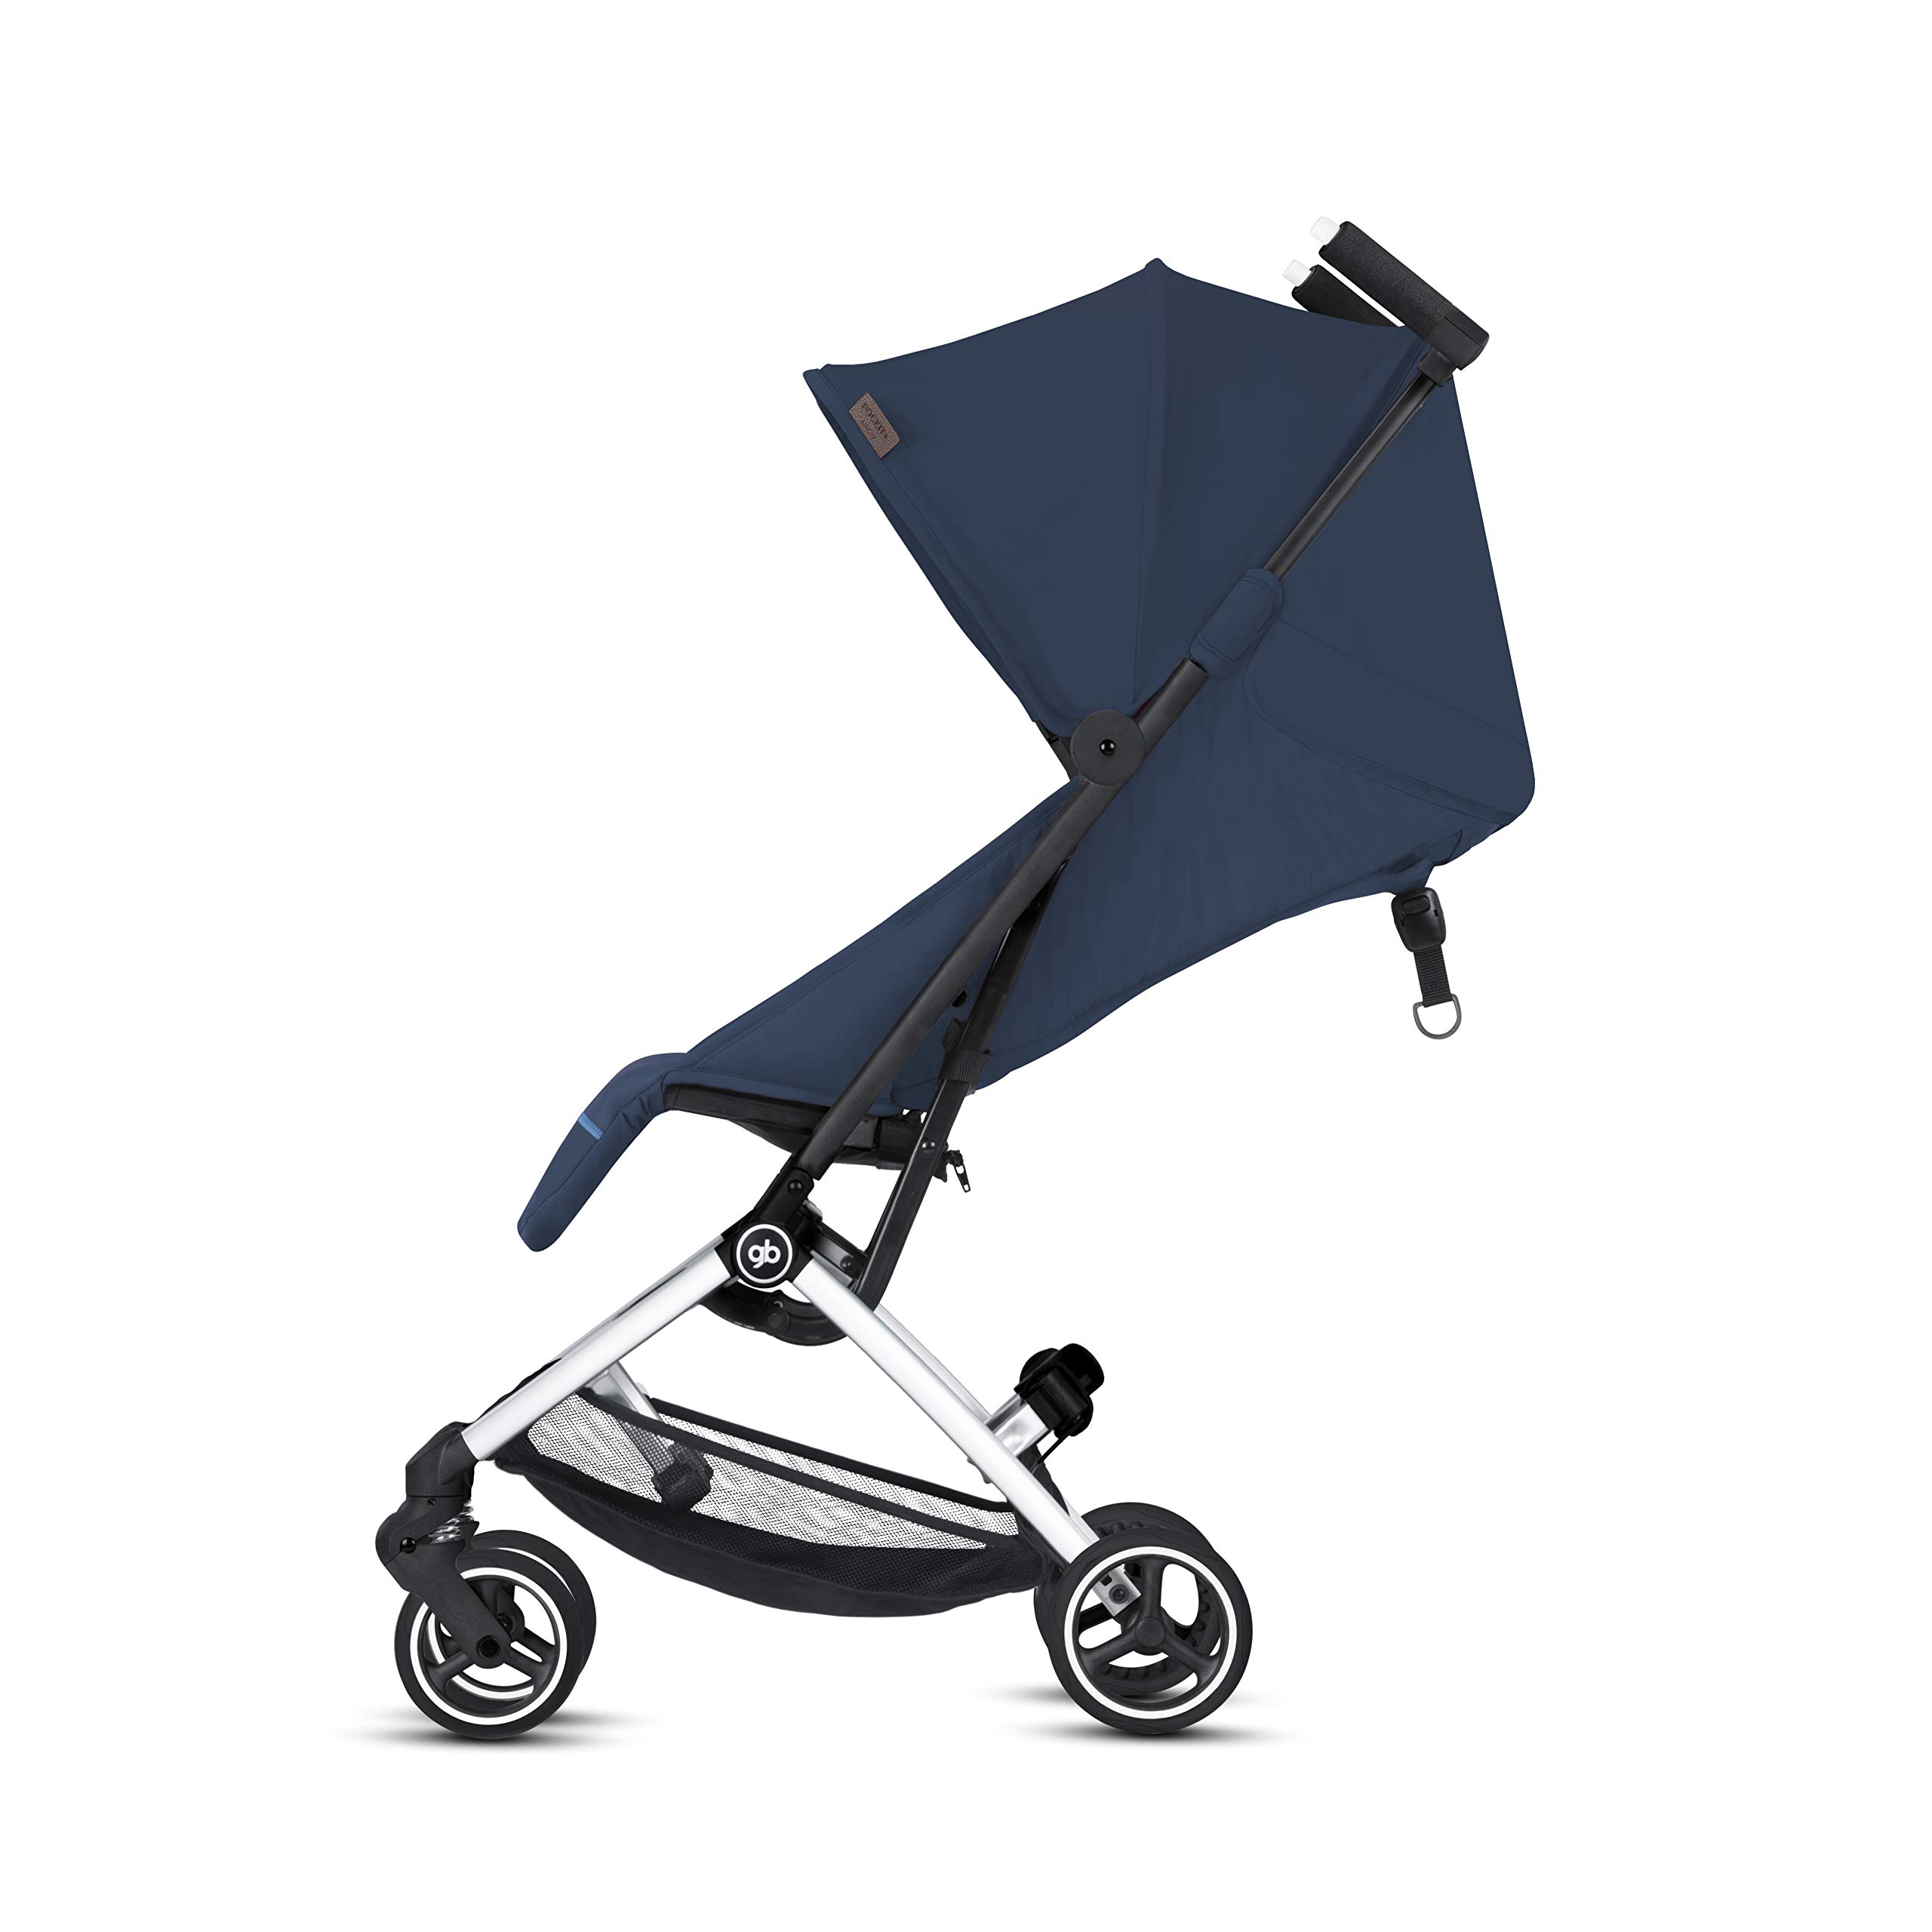 GB Pockit+ All-City Stroller - Night Blue by gb (Image #3)